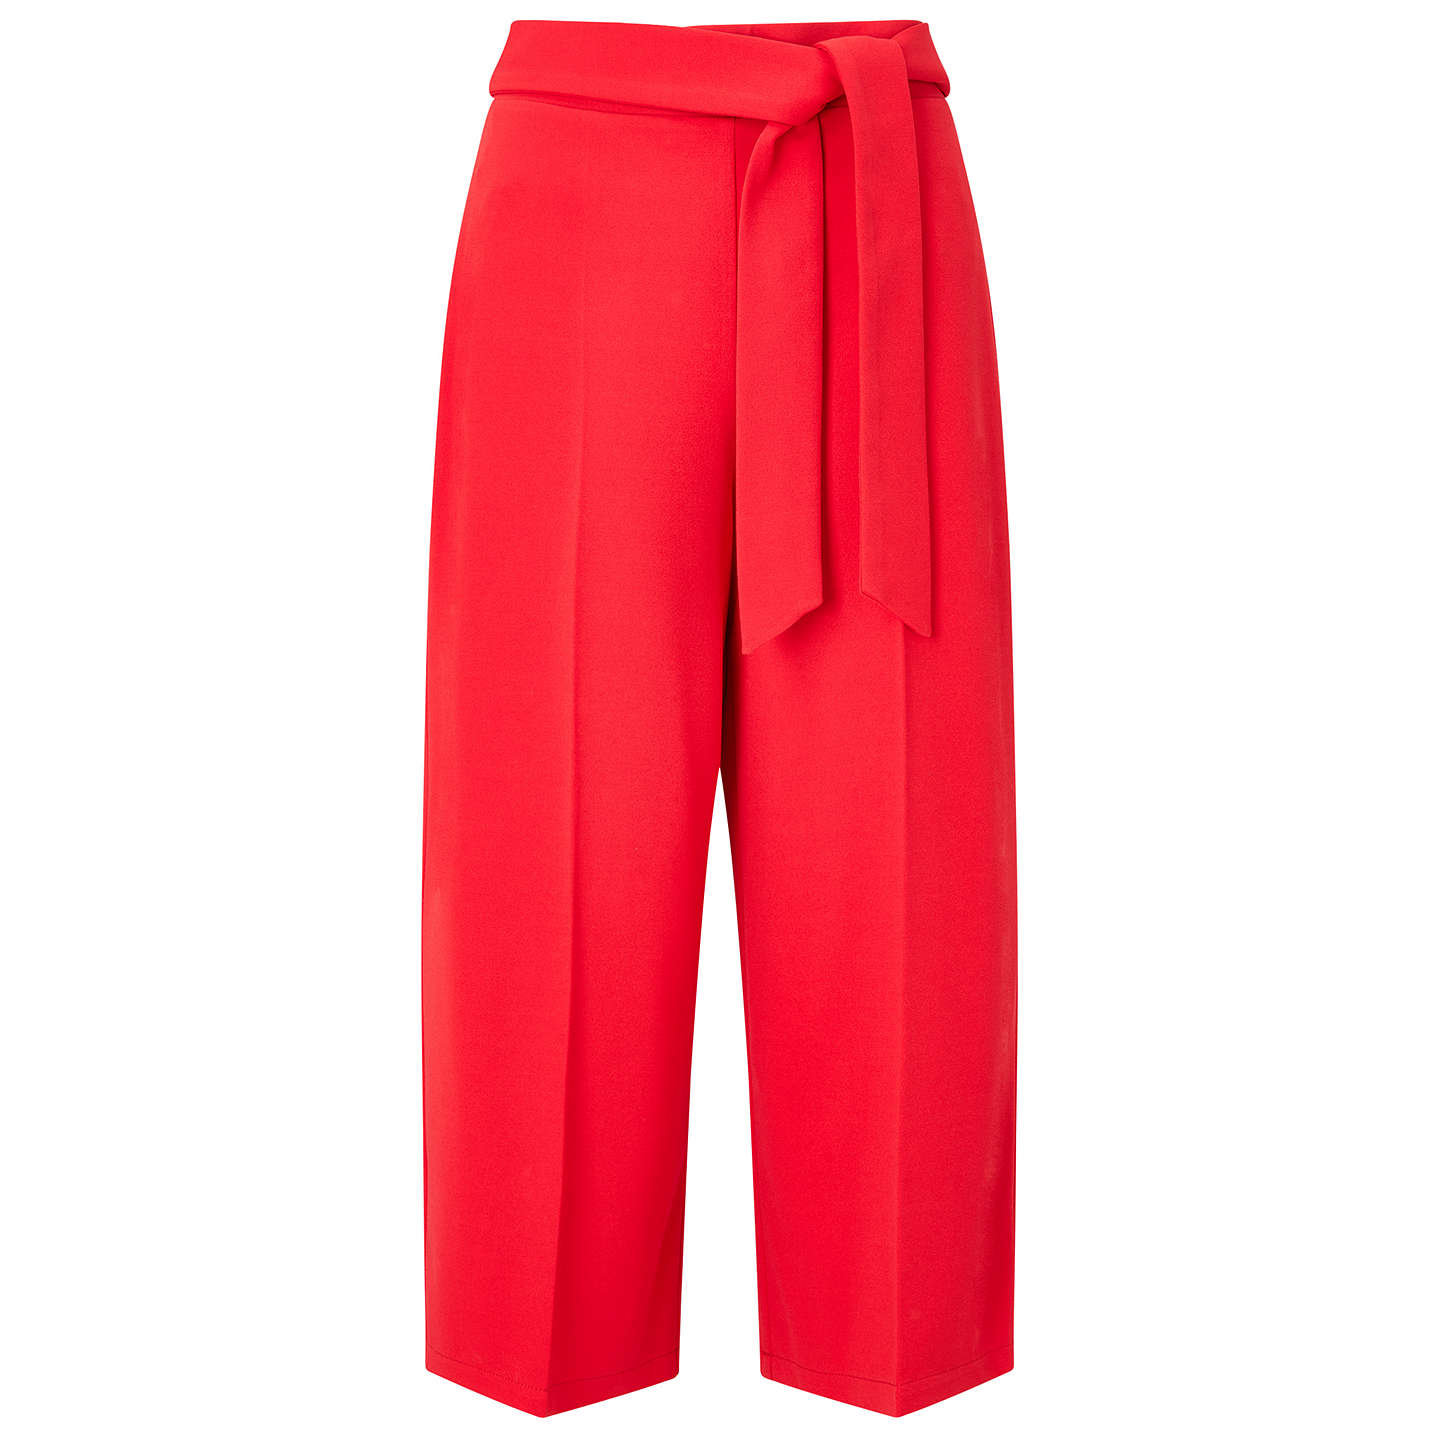 BuyMiss Selfridge Petite Culotte Trousers, Red, 6 Online at johnlewis.com